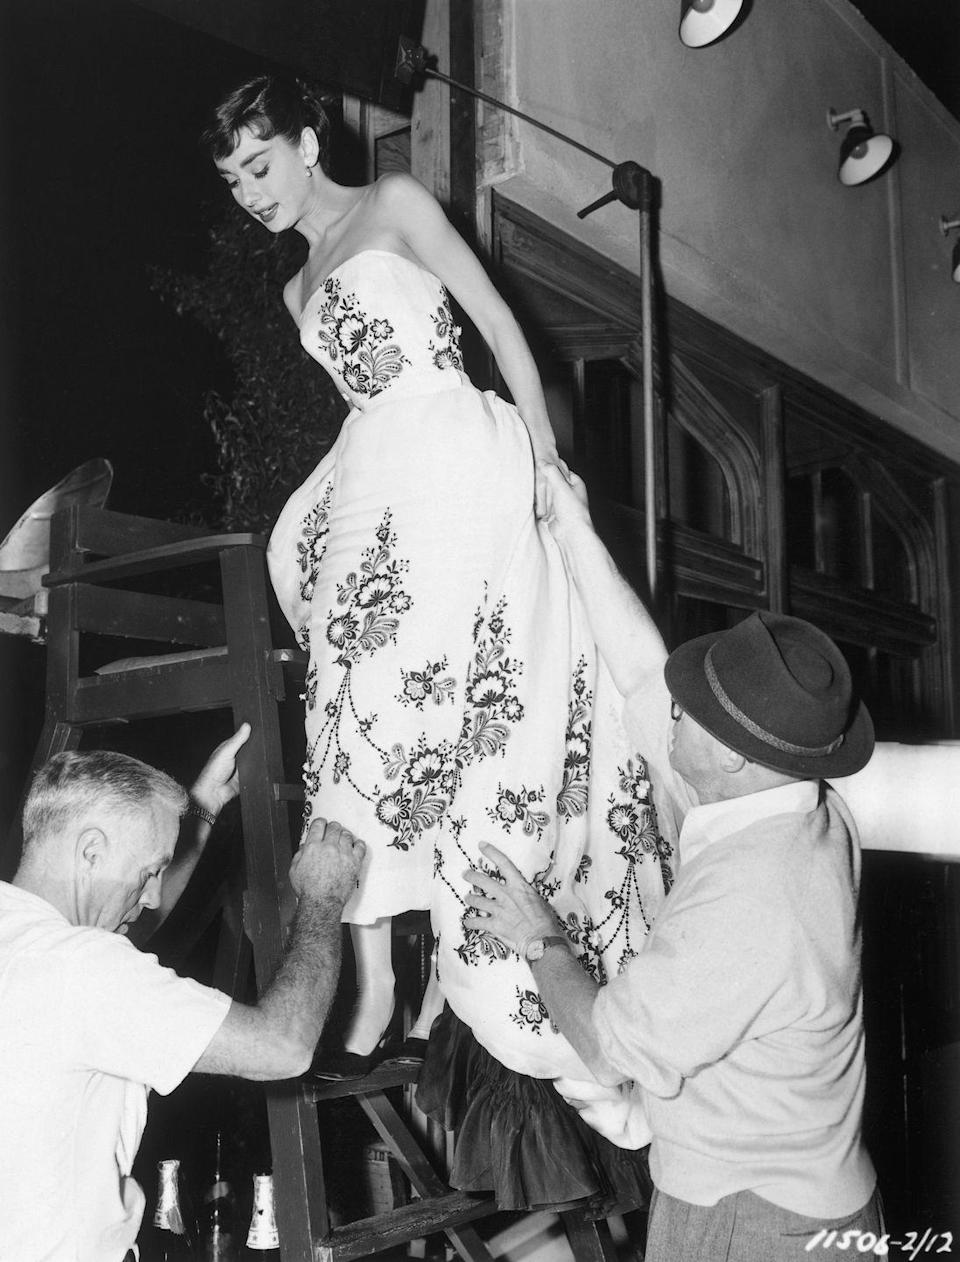 <p>Audrey Hepburn, dressed in an evening gown, is helped down a ladder by two men on the set of Sabrina. </p>